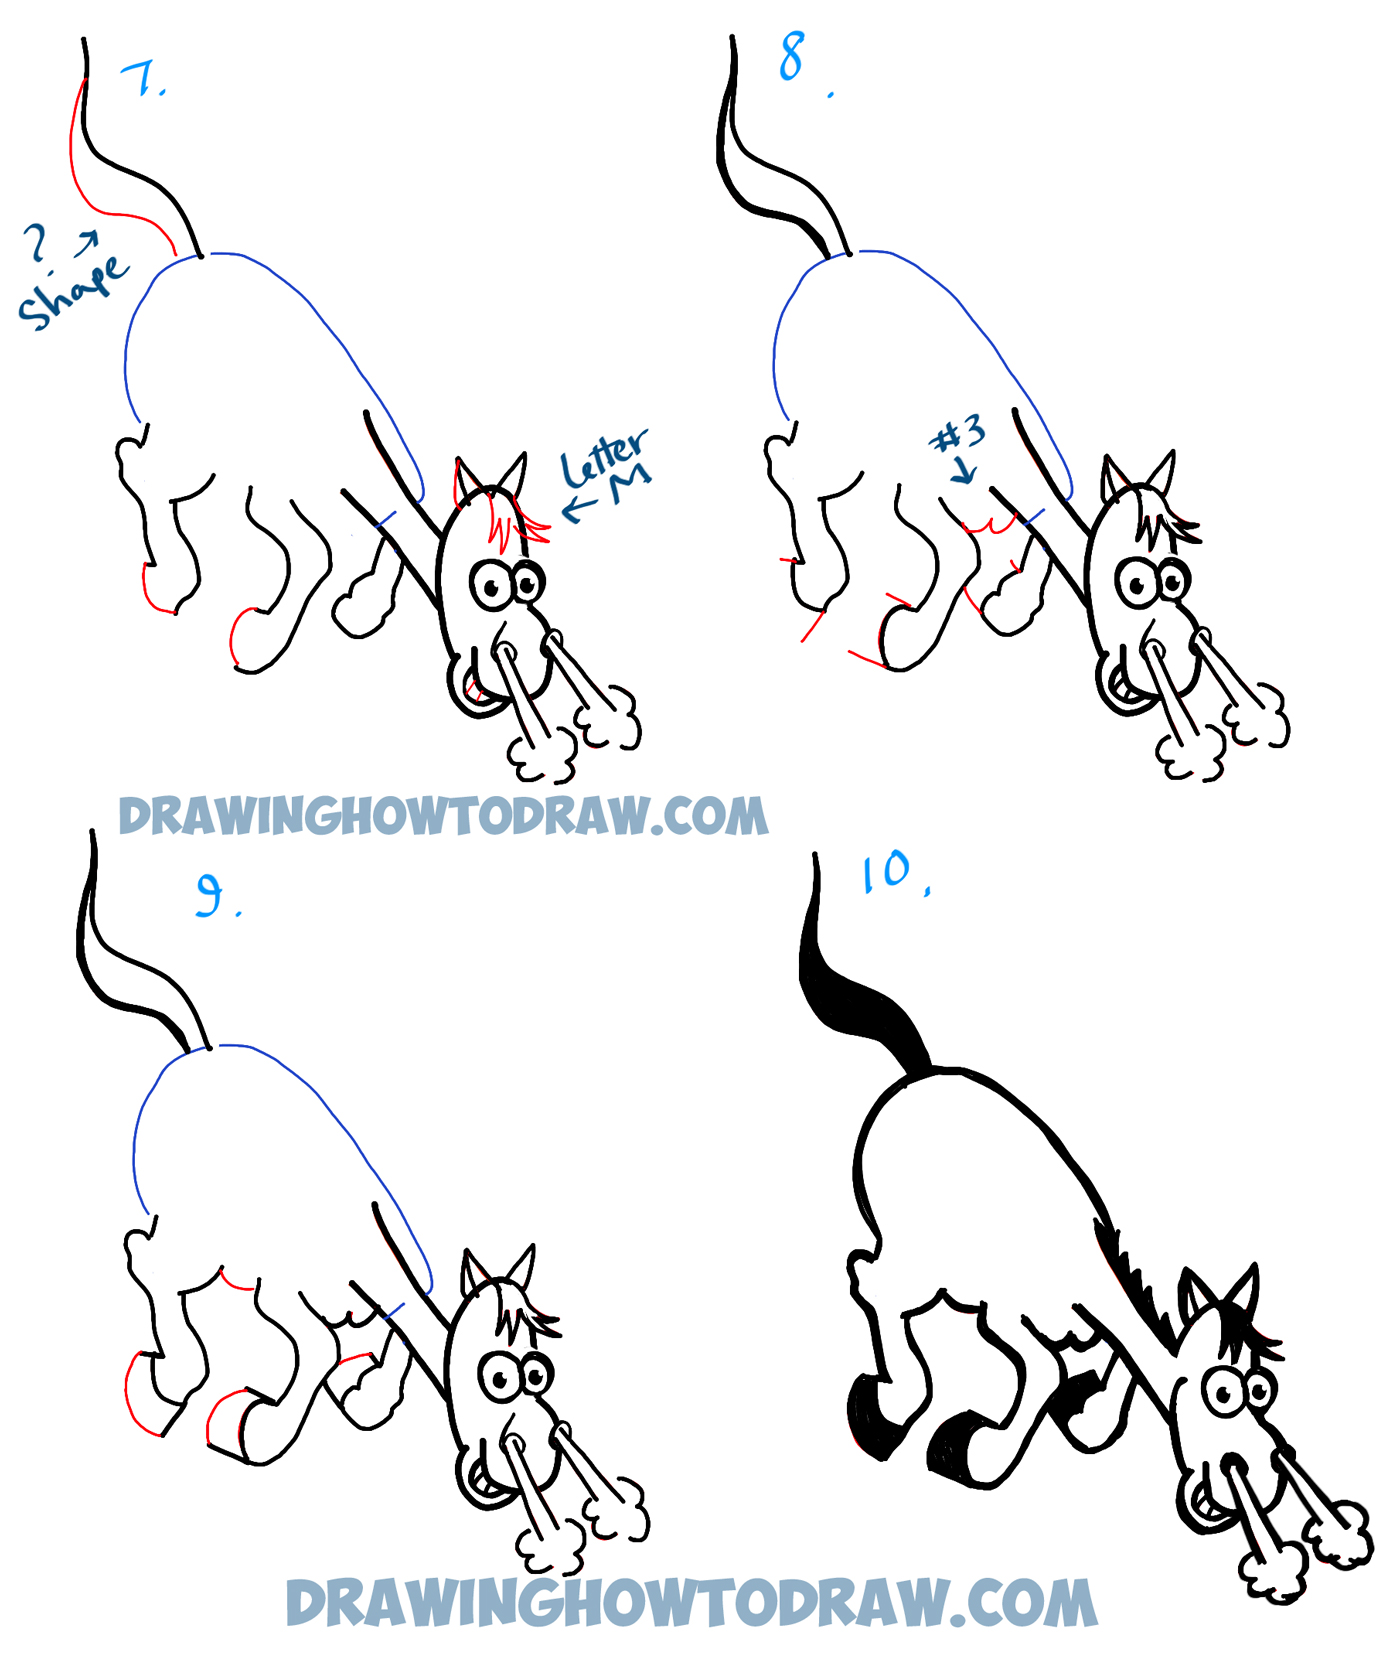 Learn How to Draw a Cartoon Horse Galloping / Charging - Simple Steps Drawing Lesson